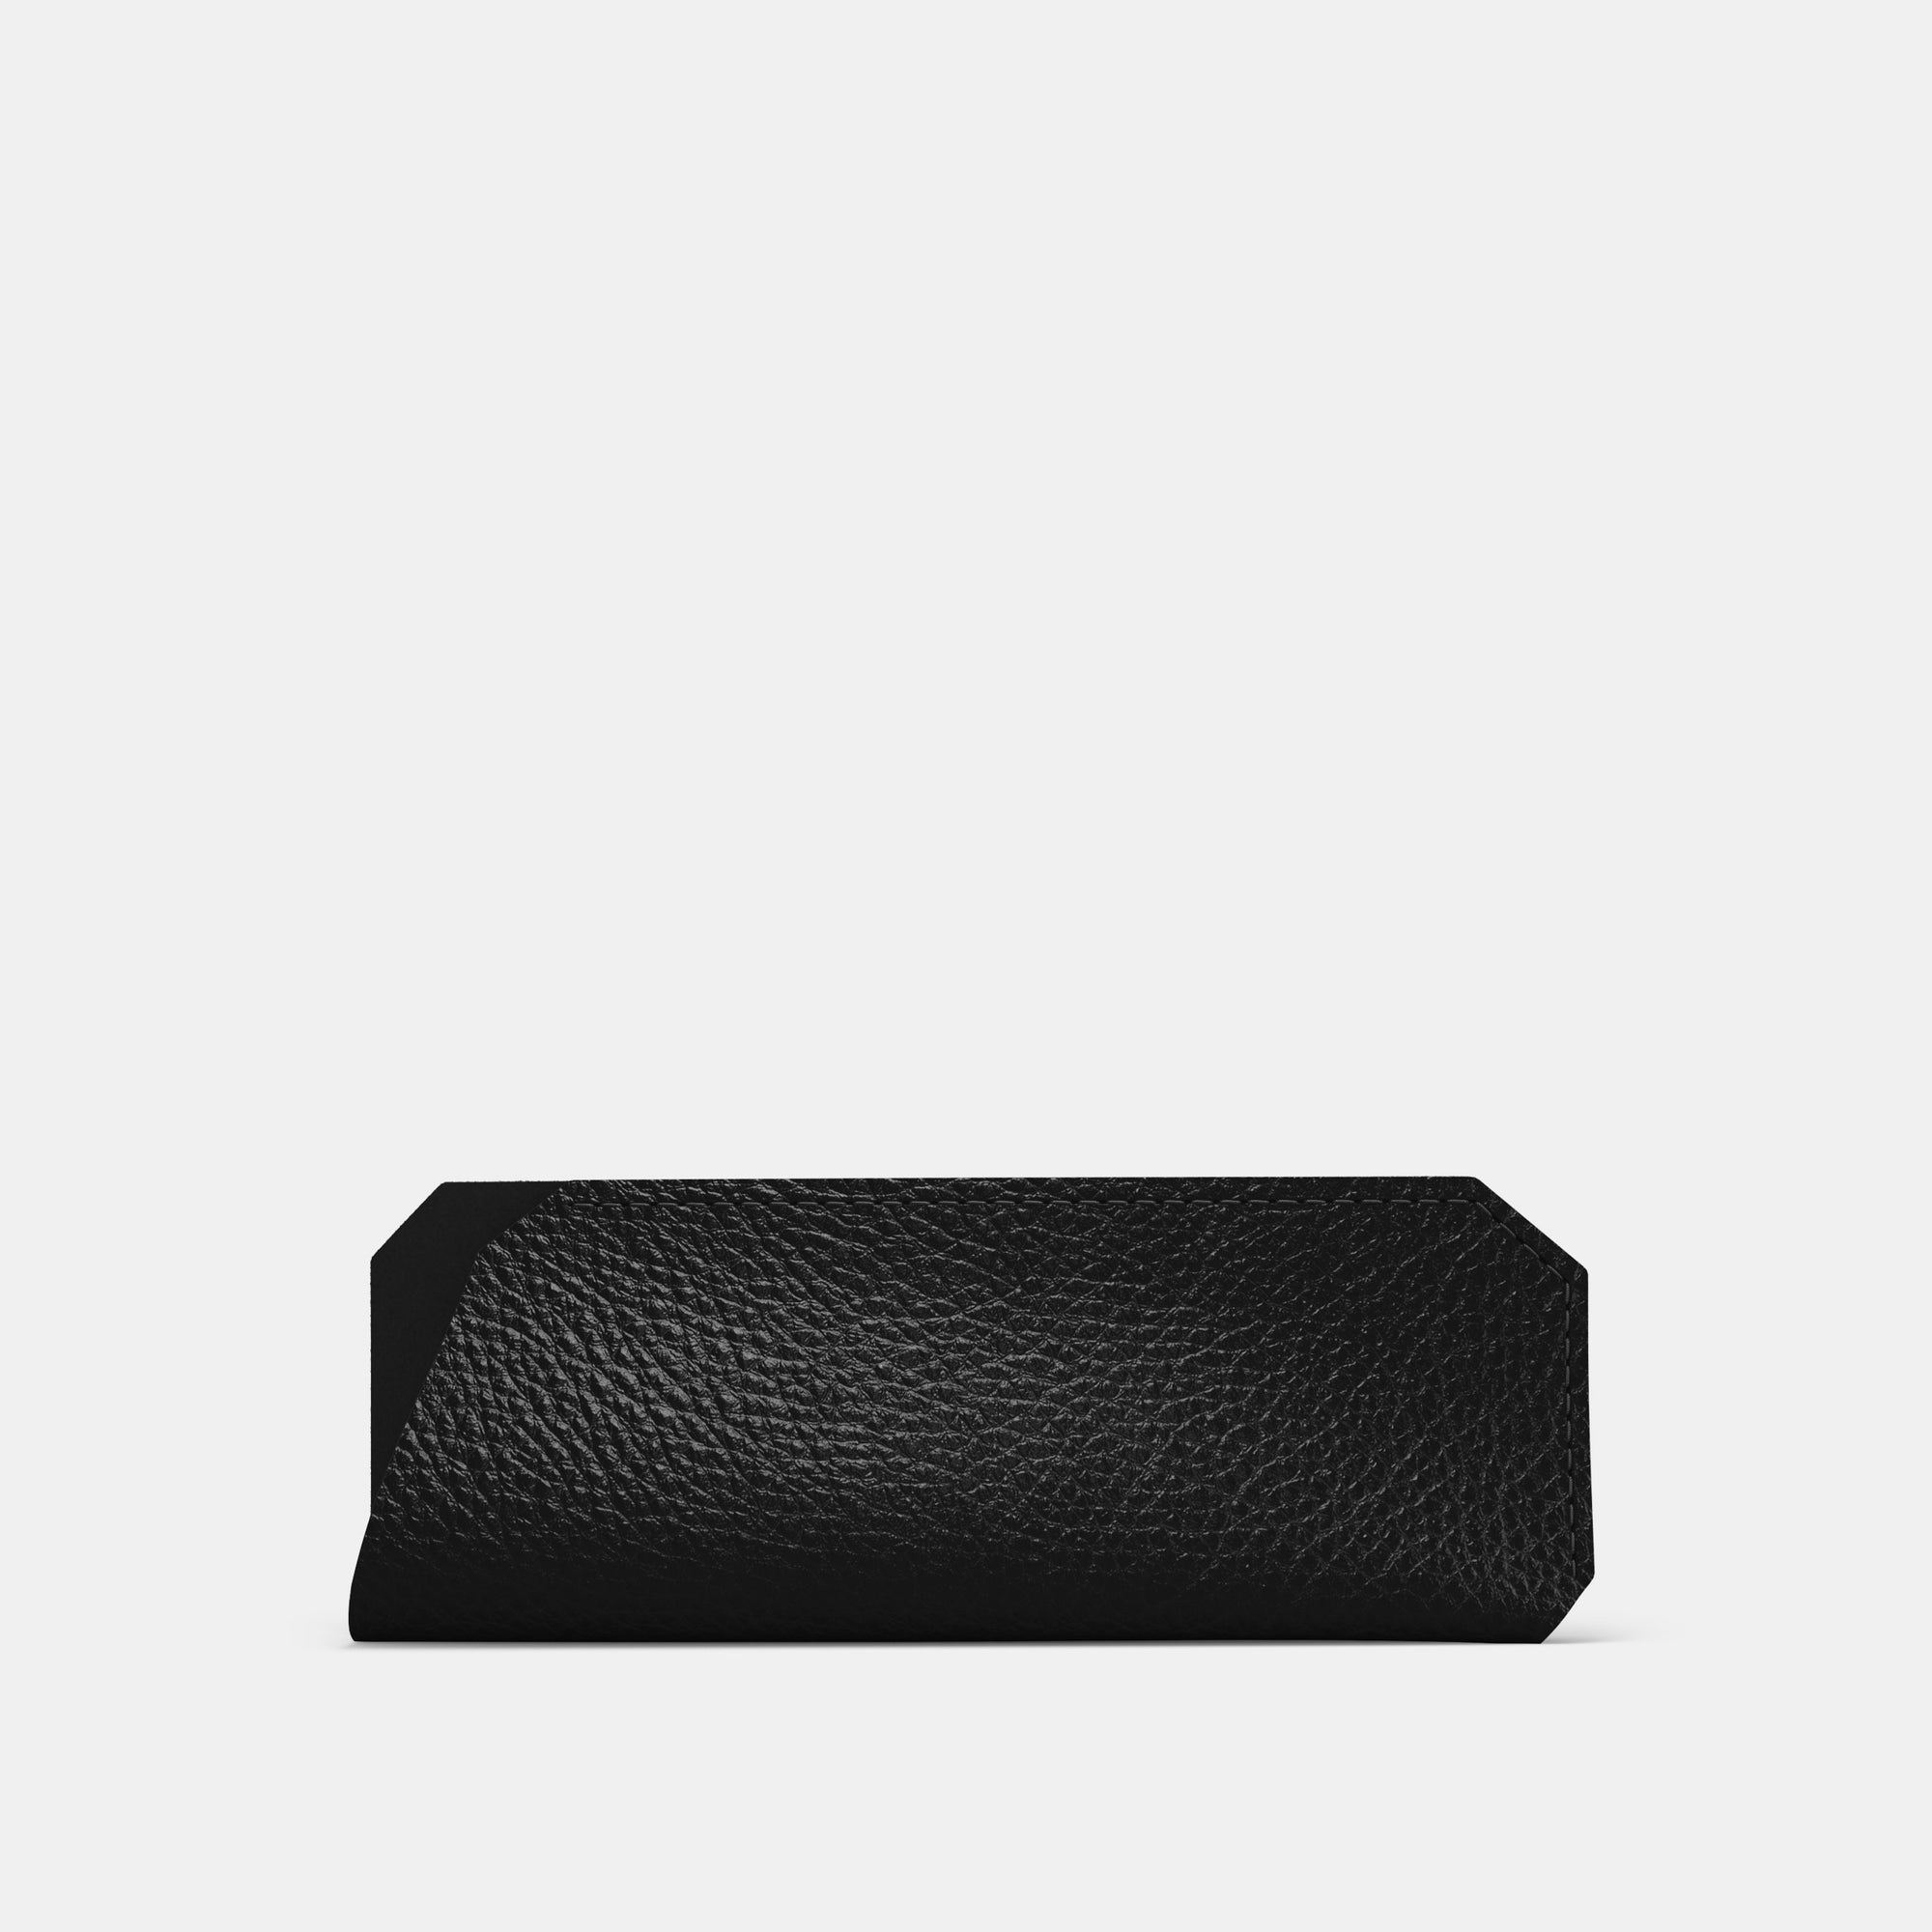 Glasses case - Black and Black - RYAN London